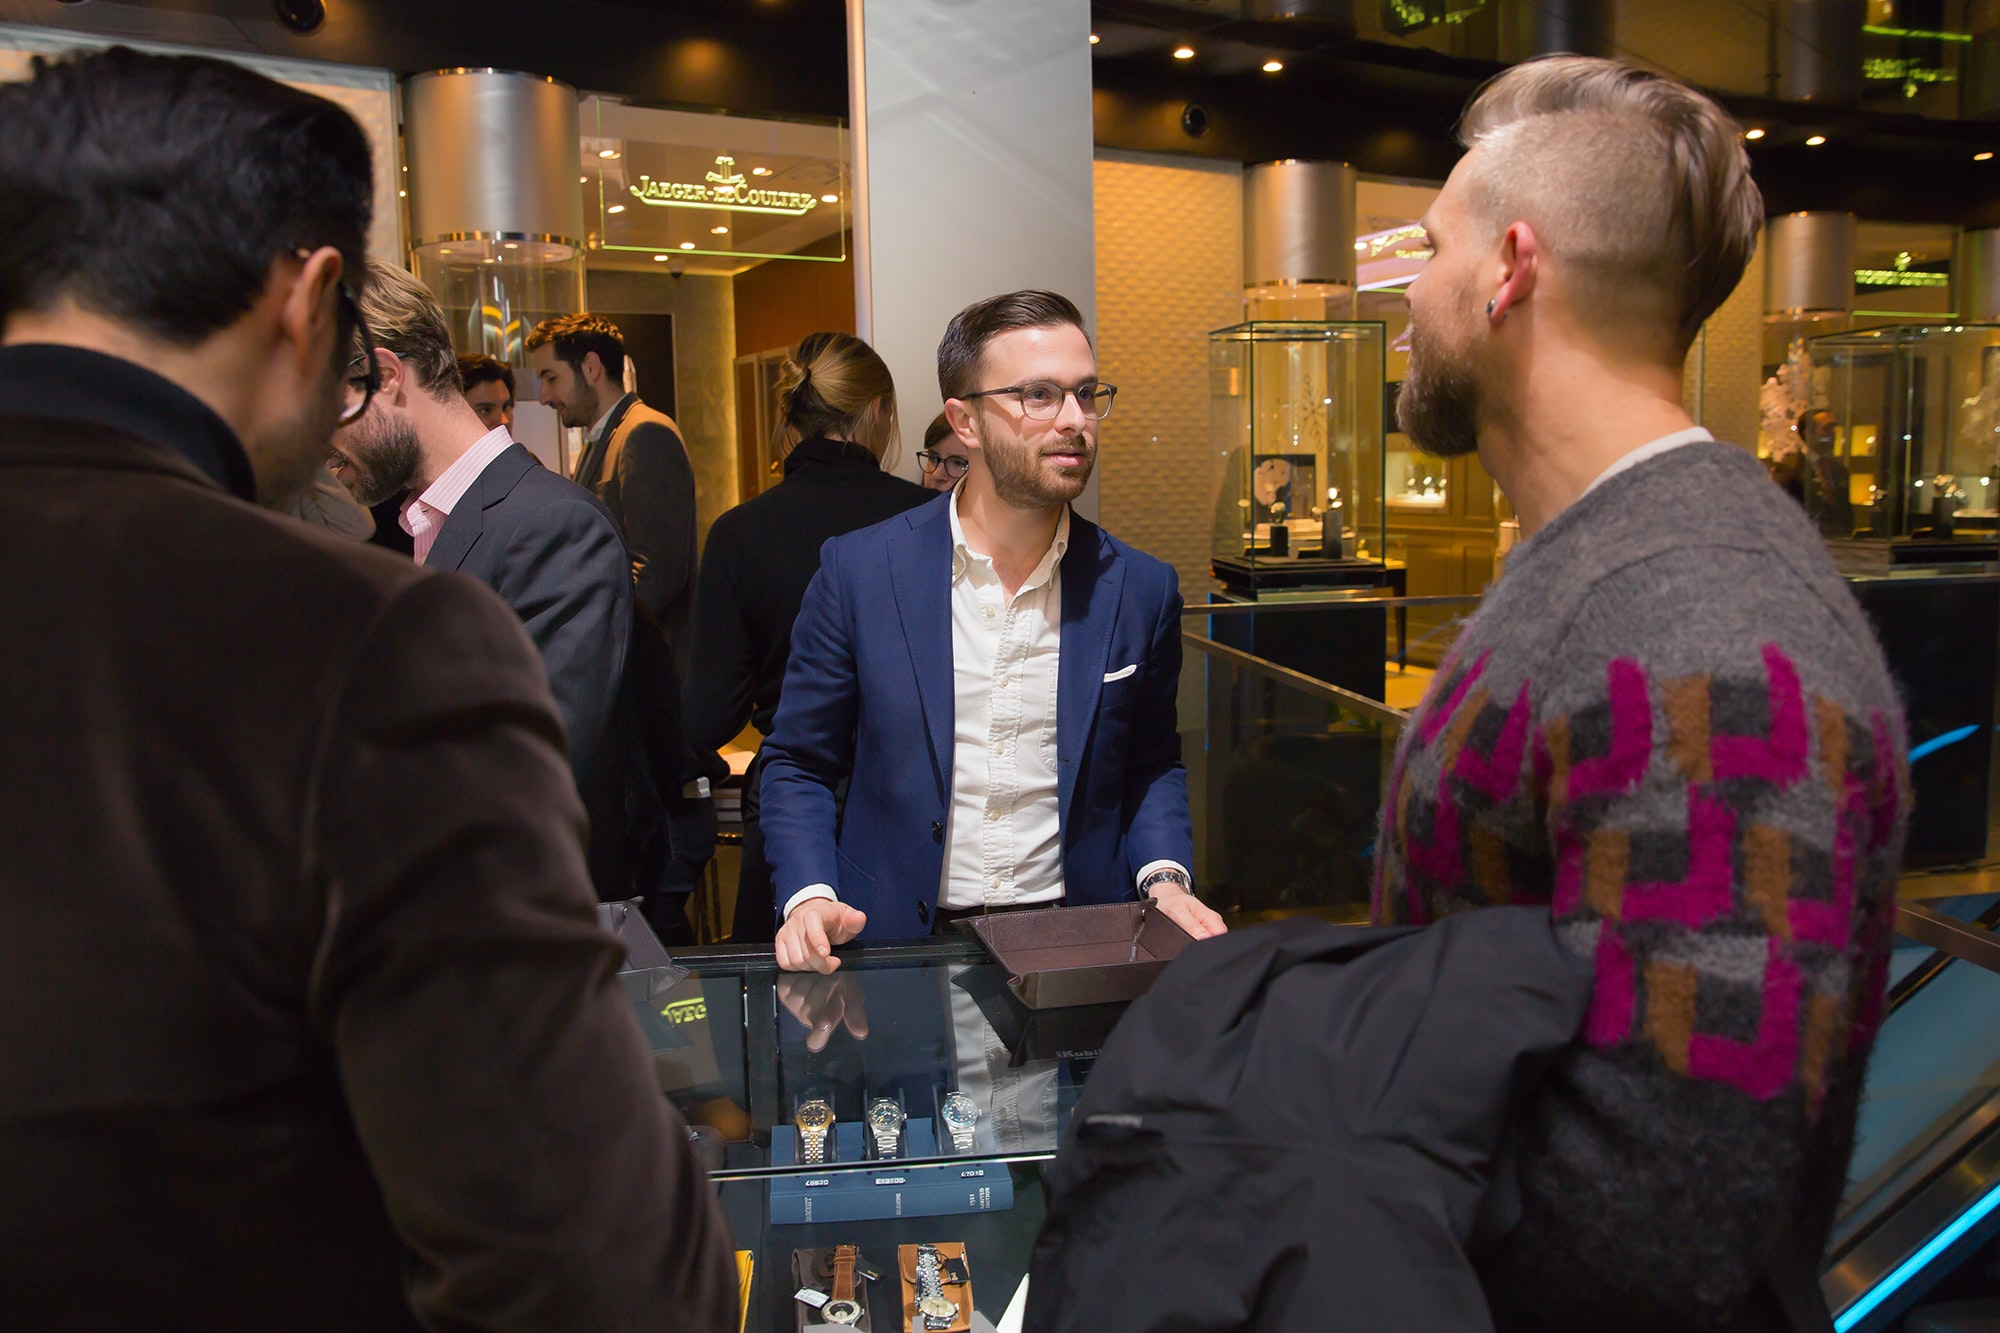 Hodinkee Harrods pop-up Photo Report: Watch Spotting At The HODINKEE Meet-Up In London (Plus Our Holiday 2016 Pop-Up At Harrods) Photo Report: Watch Spotting At The HODINKEE Meet-Up In London (Plus Our Holiday 2016 Pop-Up At Harrods) 1